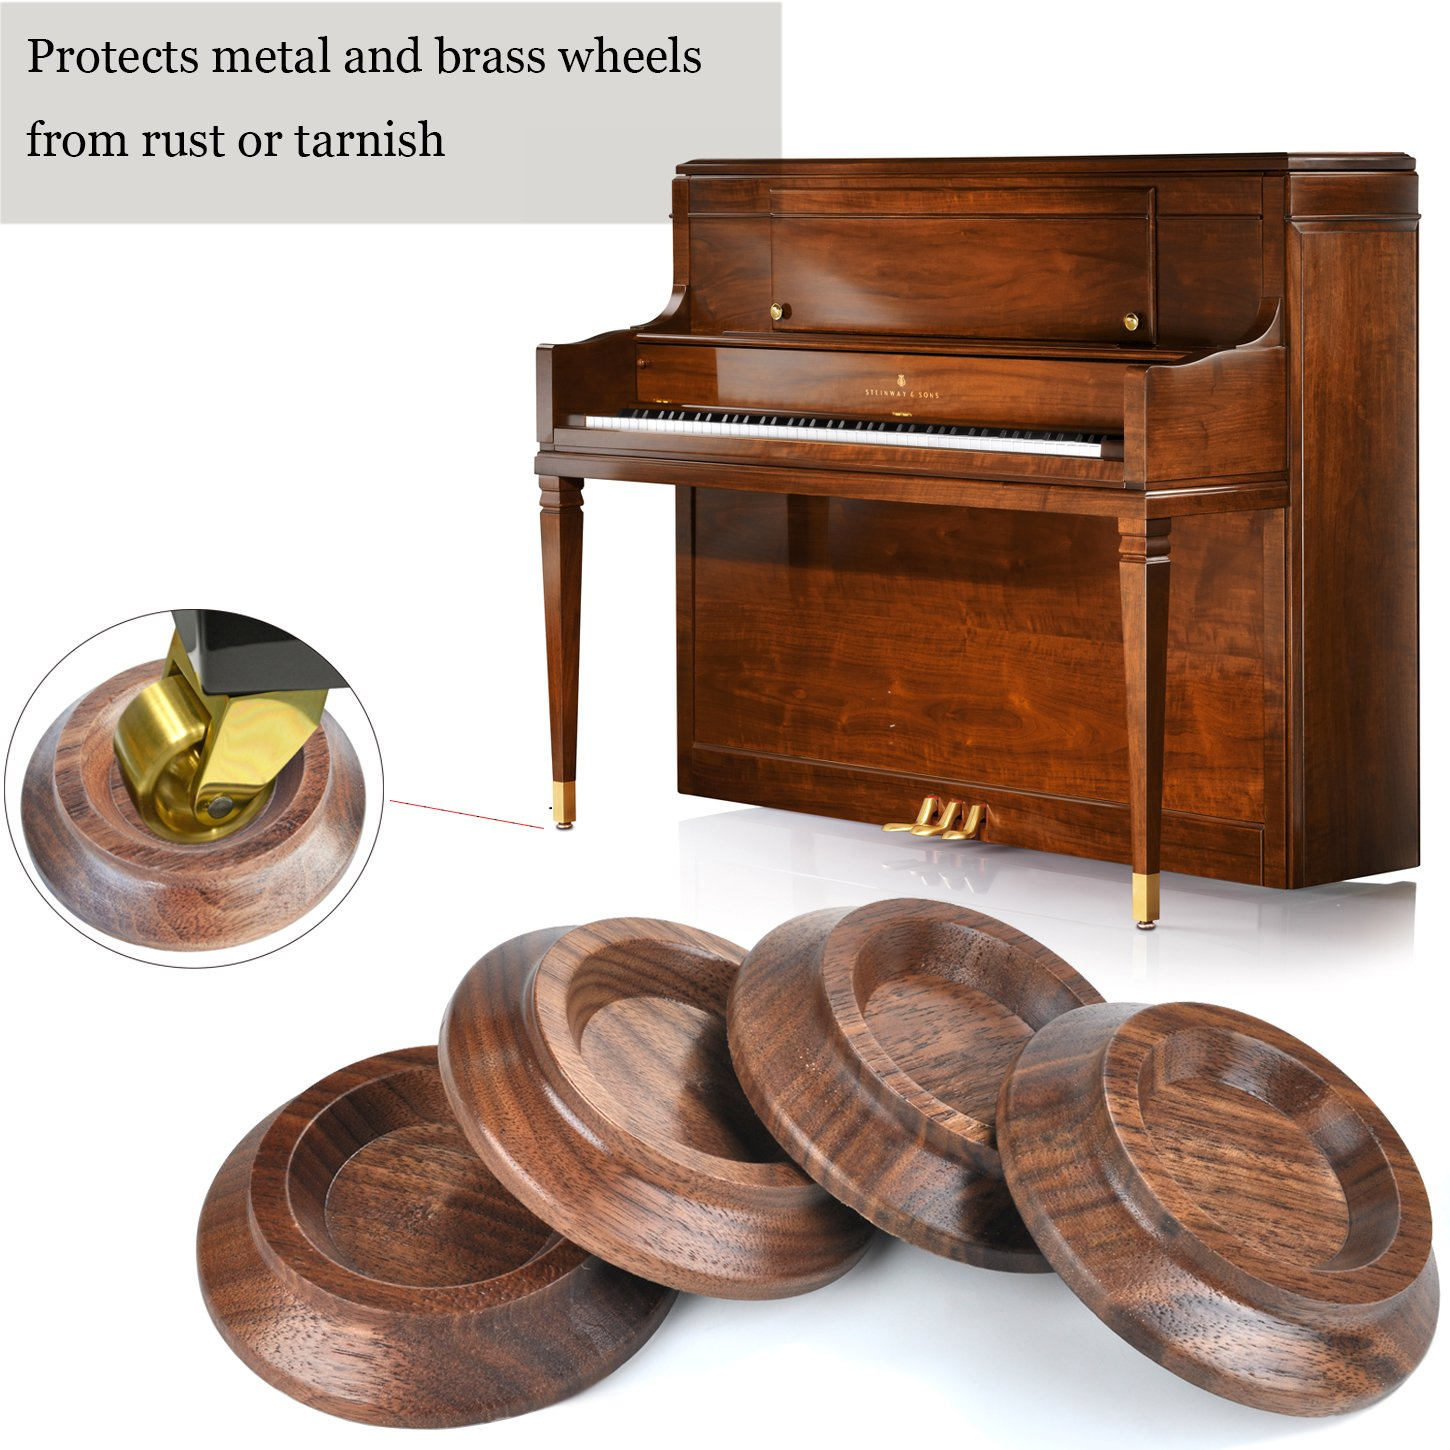 Upright Piano Caster Cups ,Solid Wood Furniture,Piano Caster Cups - Non-Slip & Anti-Noise Foam (black walnut) by WOGOD (Image #6)